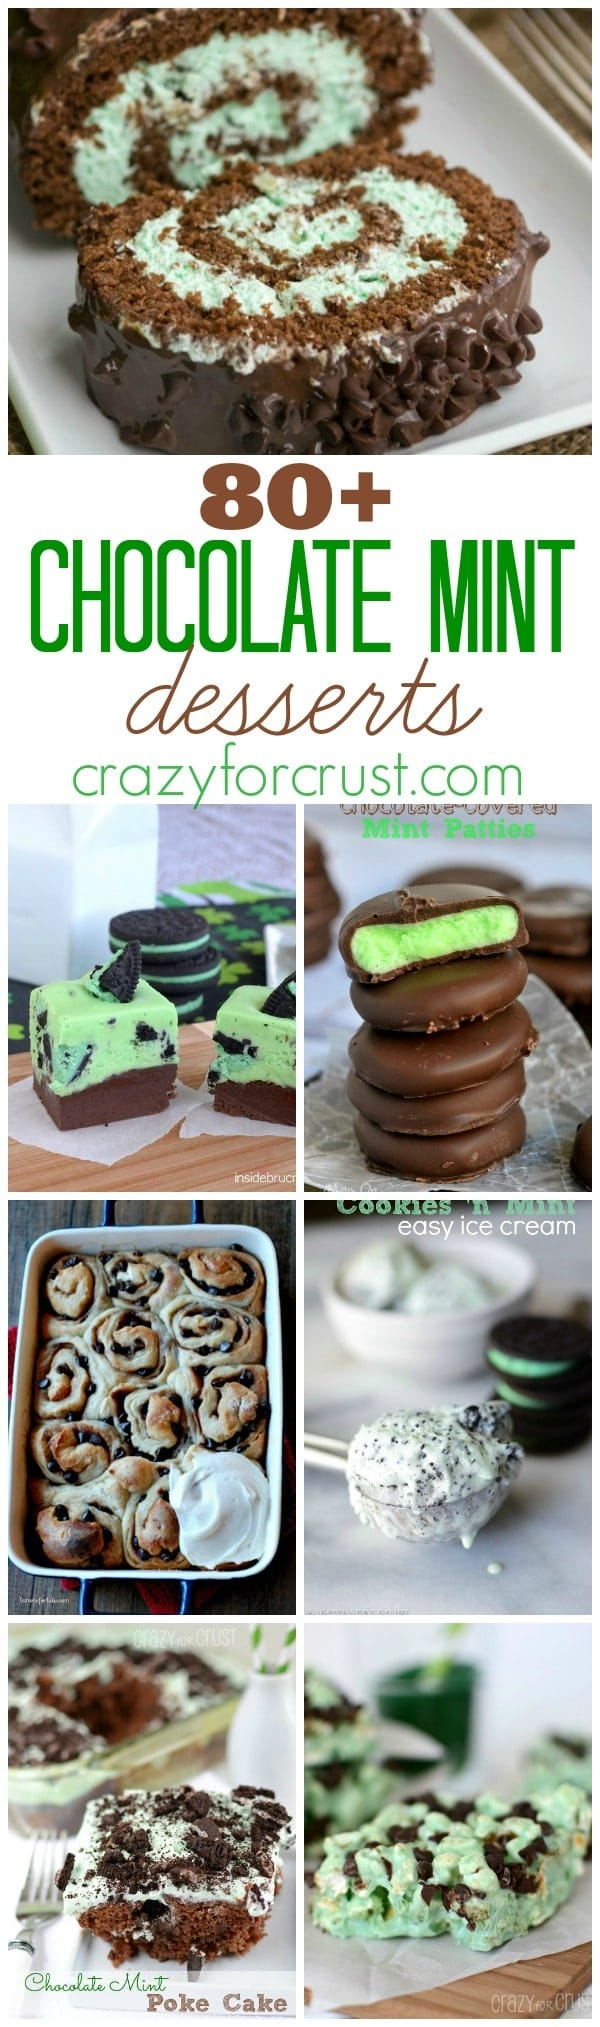 Over 80 Chocolate Mint Desserts | www.crazyforcrust.com